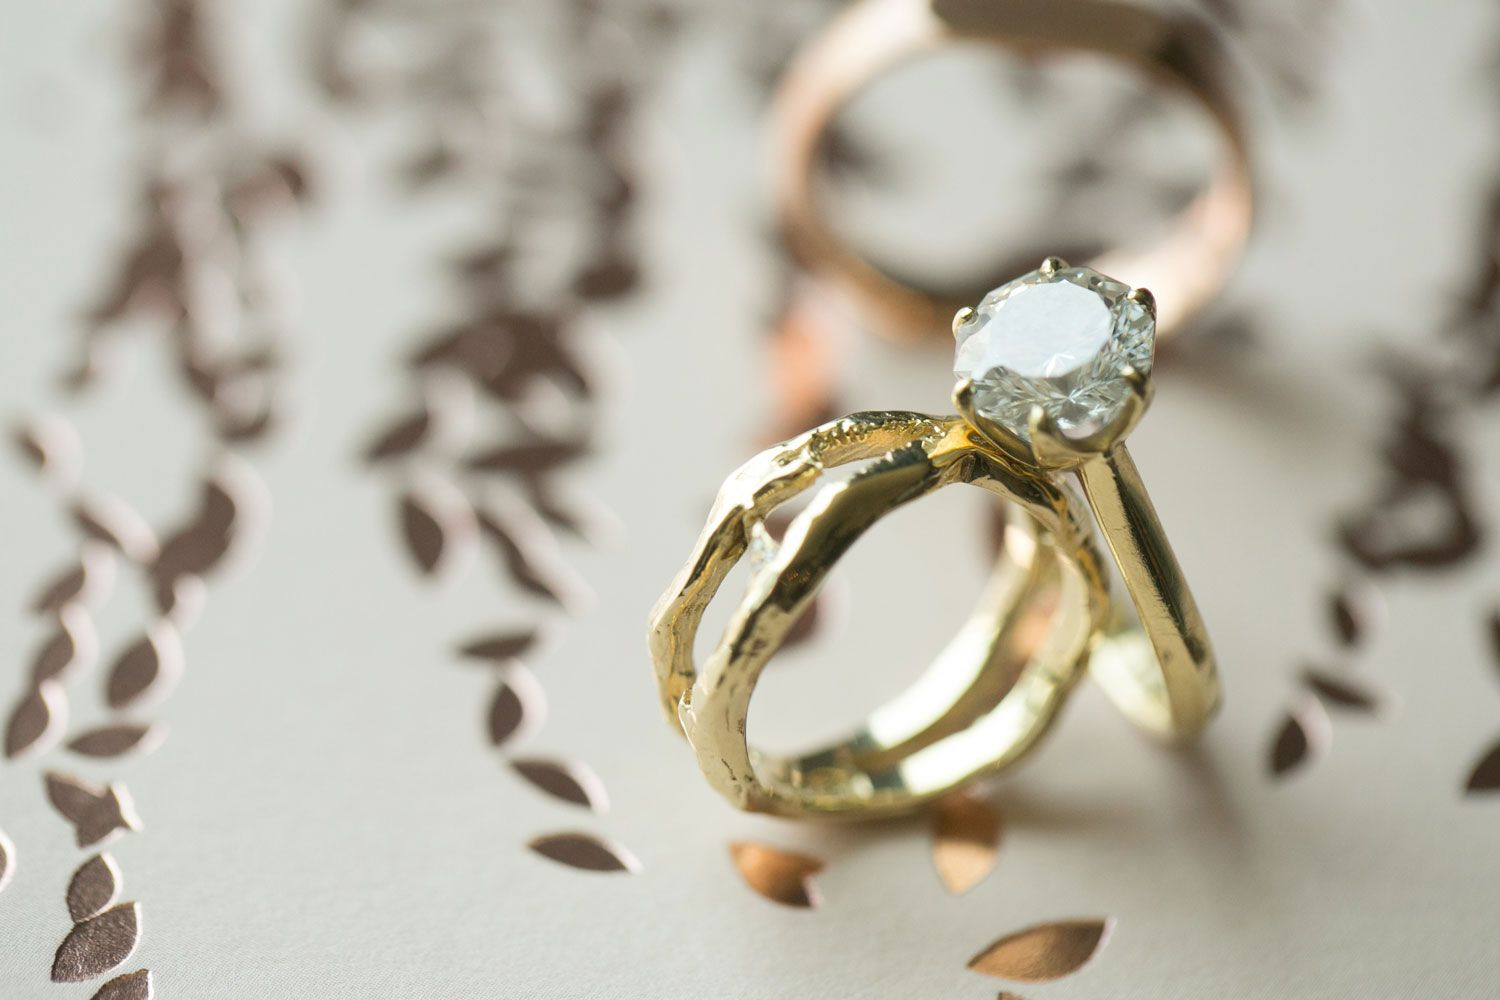 Brittany Daniel S Engagement Ring Photography Michael Segal Photography Read More Http Amazing Wedding Rings Wedding Ring Pictures Wedding Rings For Women